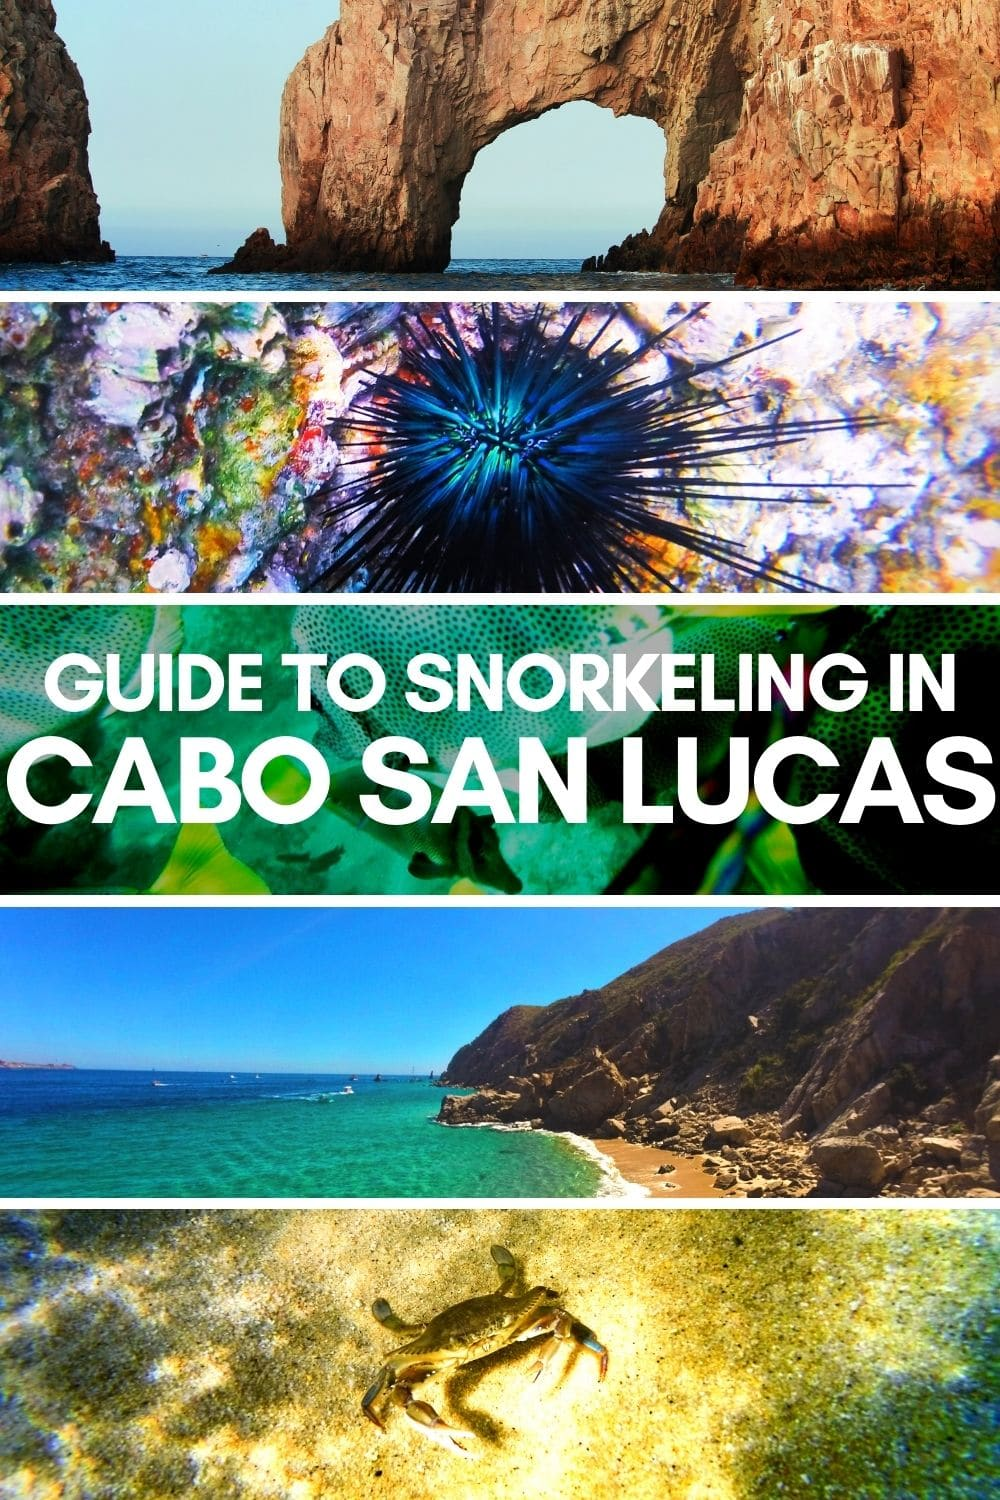 Guide to snorkeling in Cabo San Lucas, all the way up to Cabo Pulmo National Park. Snorkeling maps and tour recommendations, on your own or with kids. Best of Baja beaches and wildlife.